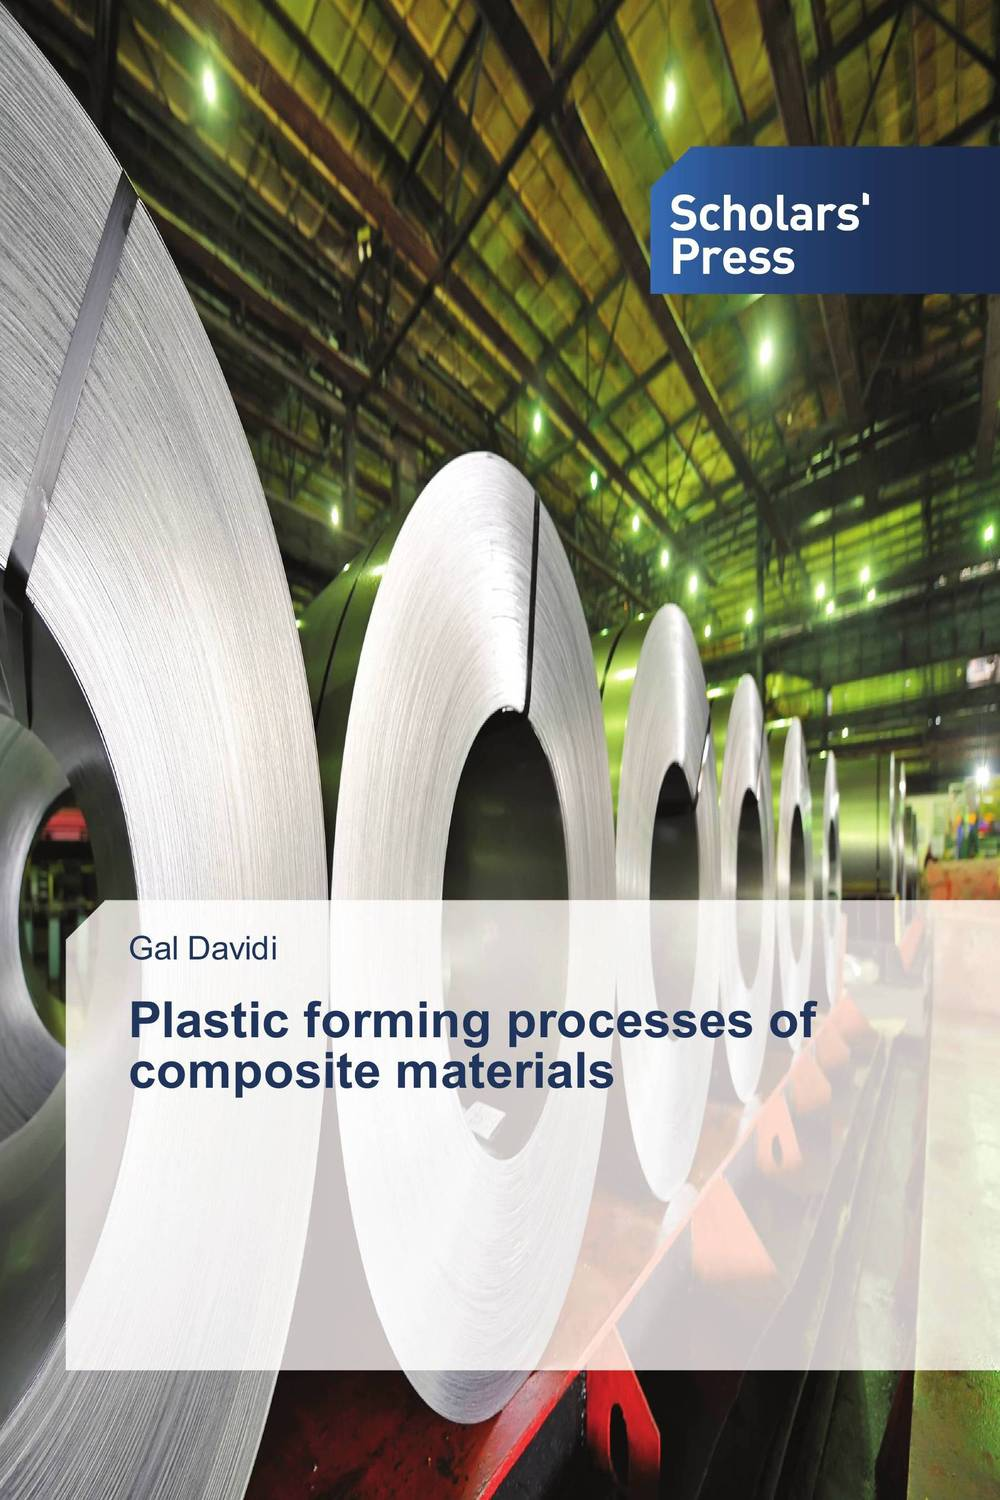 Plastic forming processes of composite materials composite structures design safety and innovation